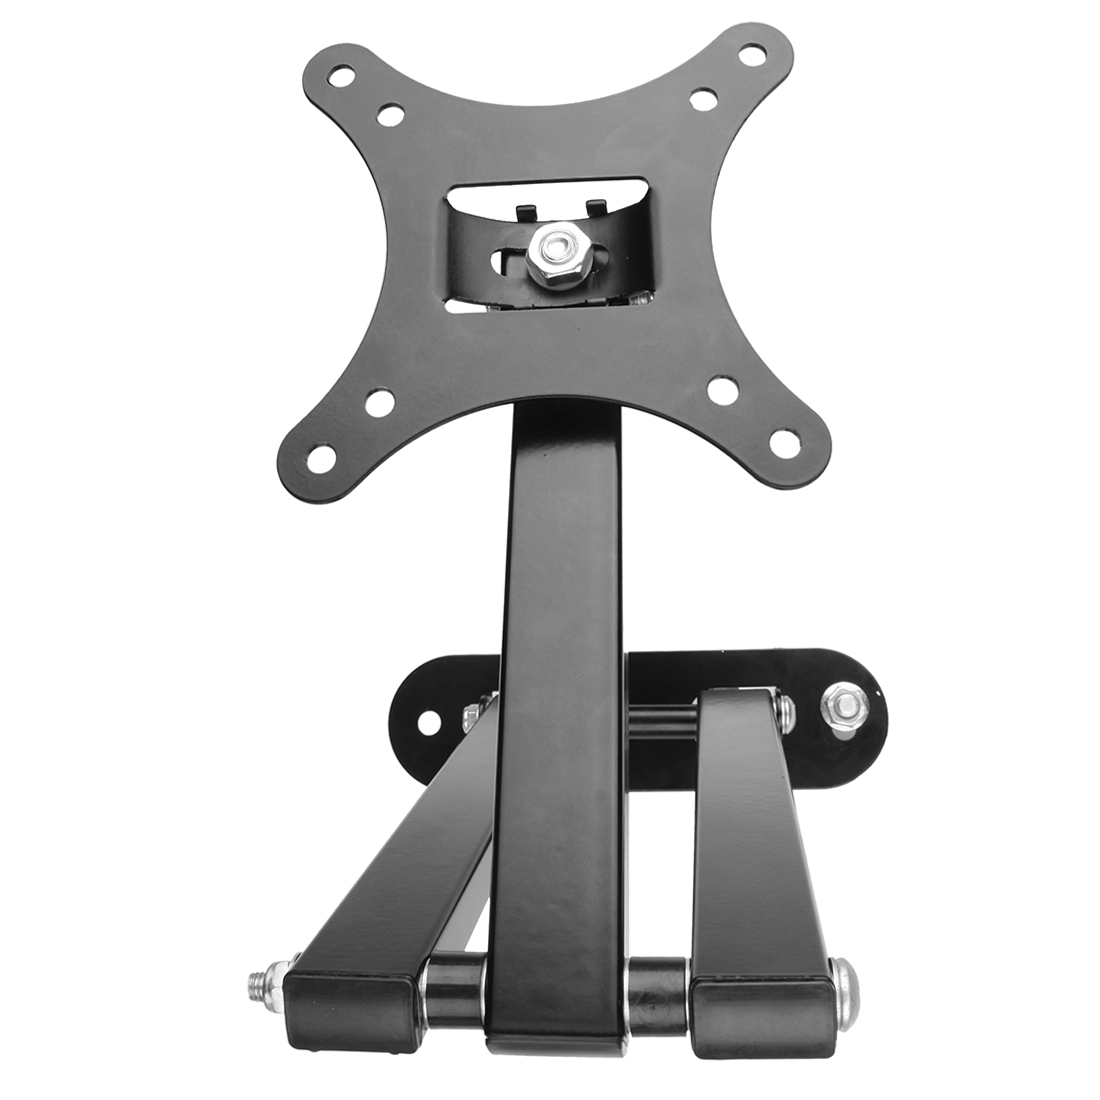 Plsama Ultra font b Slim b font Tilt Swivel TV Wall Mount Bracket For 10 70